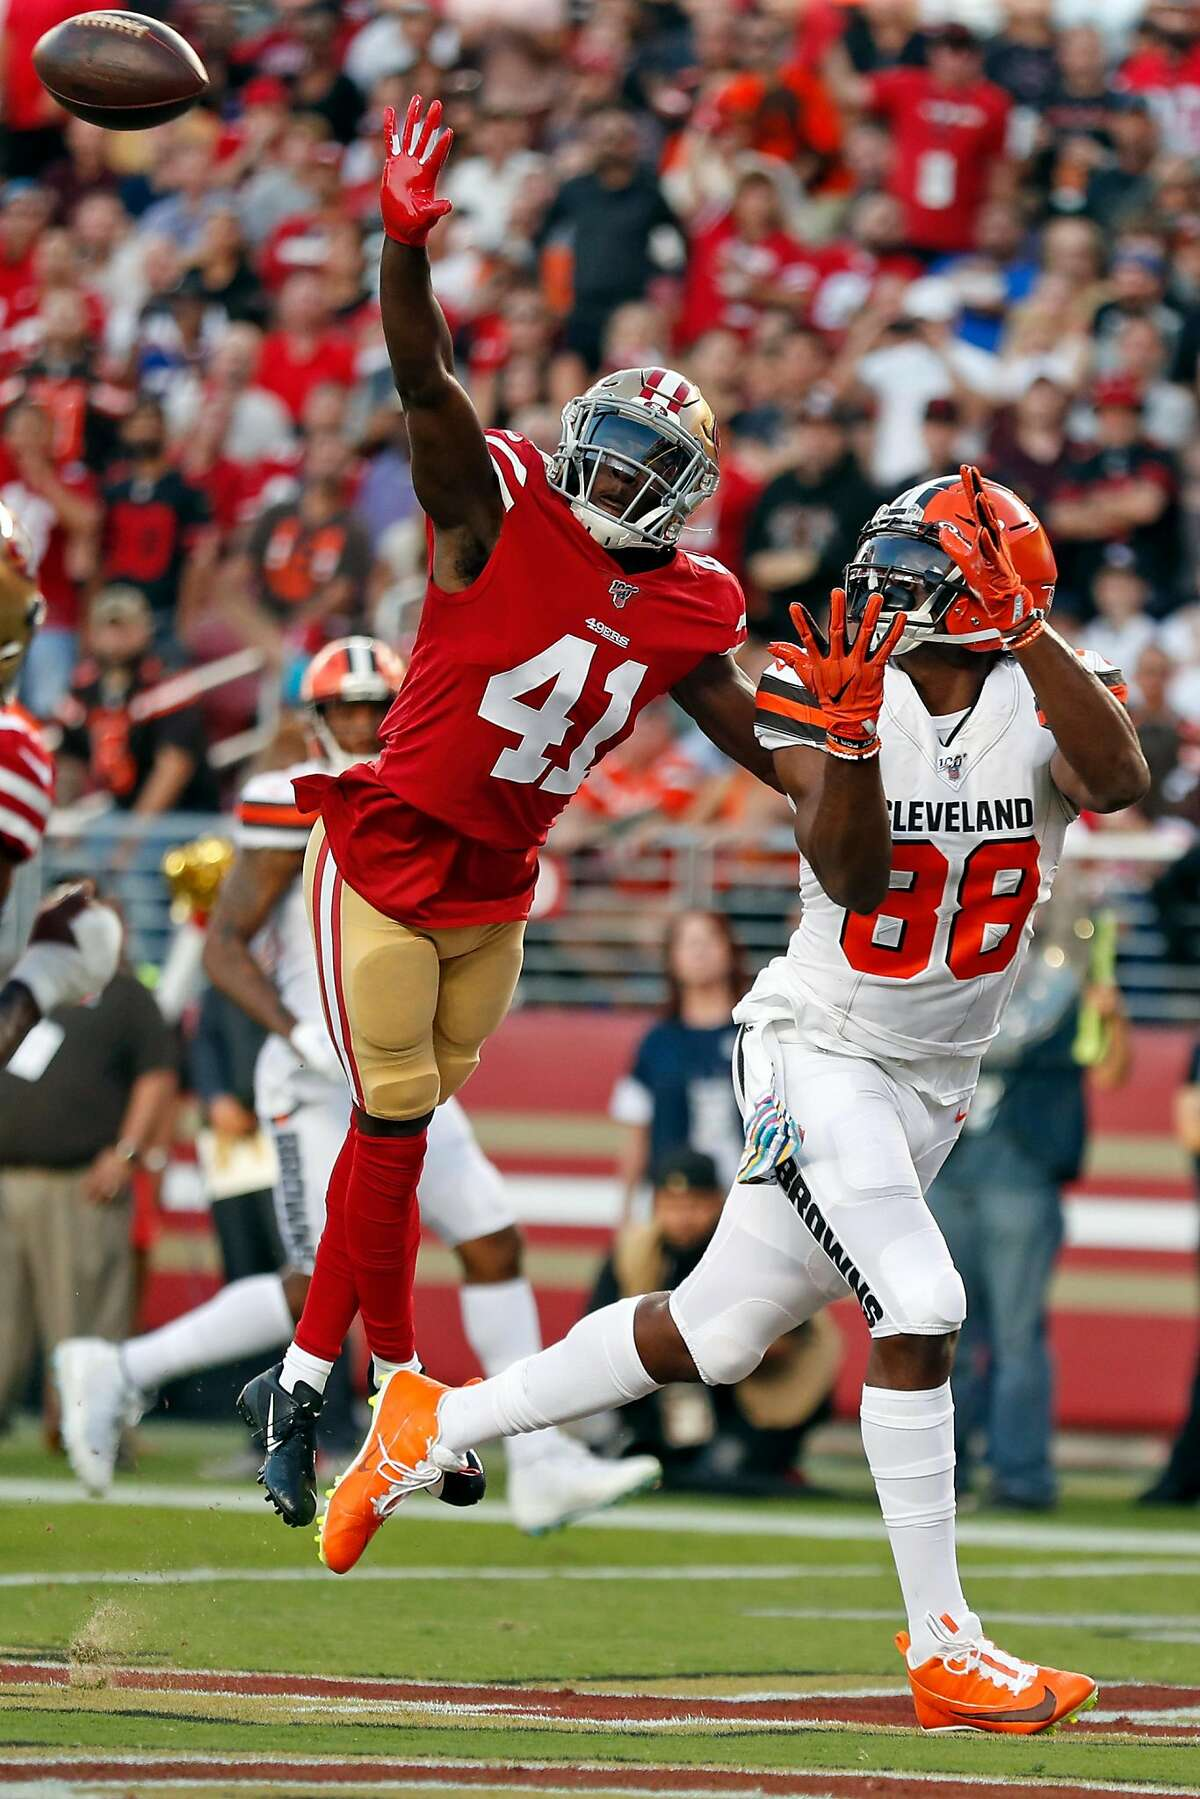 San Francisco 49ers' Emmanuel Moseley breaks up a pass intended for Cleveland Browns' Demetrius Harris in 2nd quarter during NFL game at Levi's Stadium in Santa Clara, Calif., on Monday, October 7, 2019.